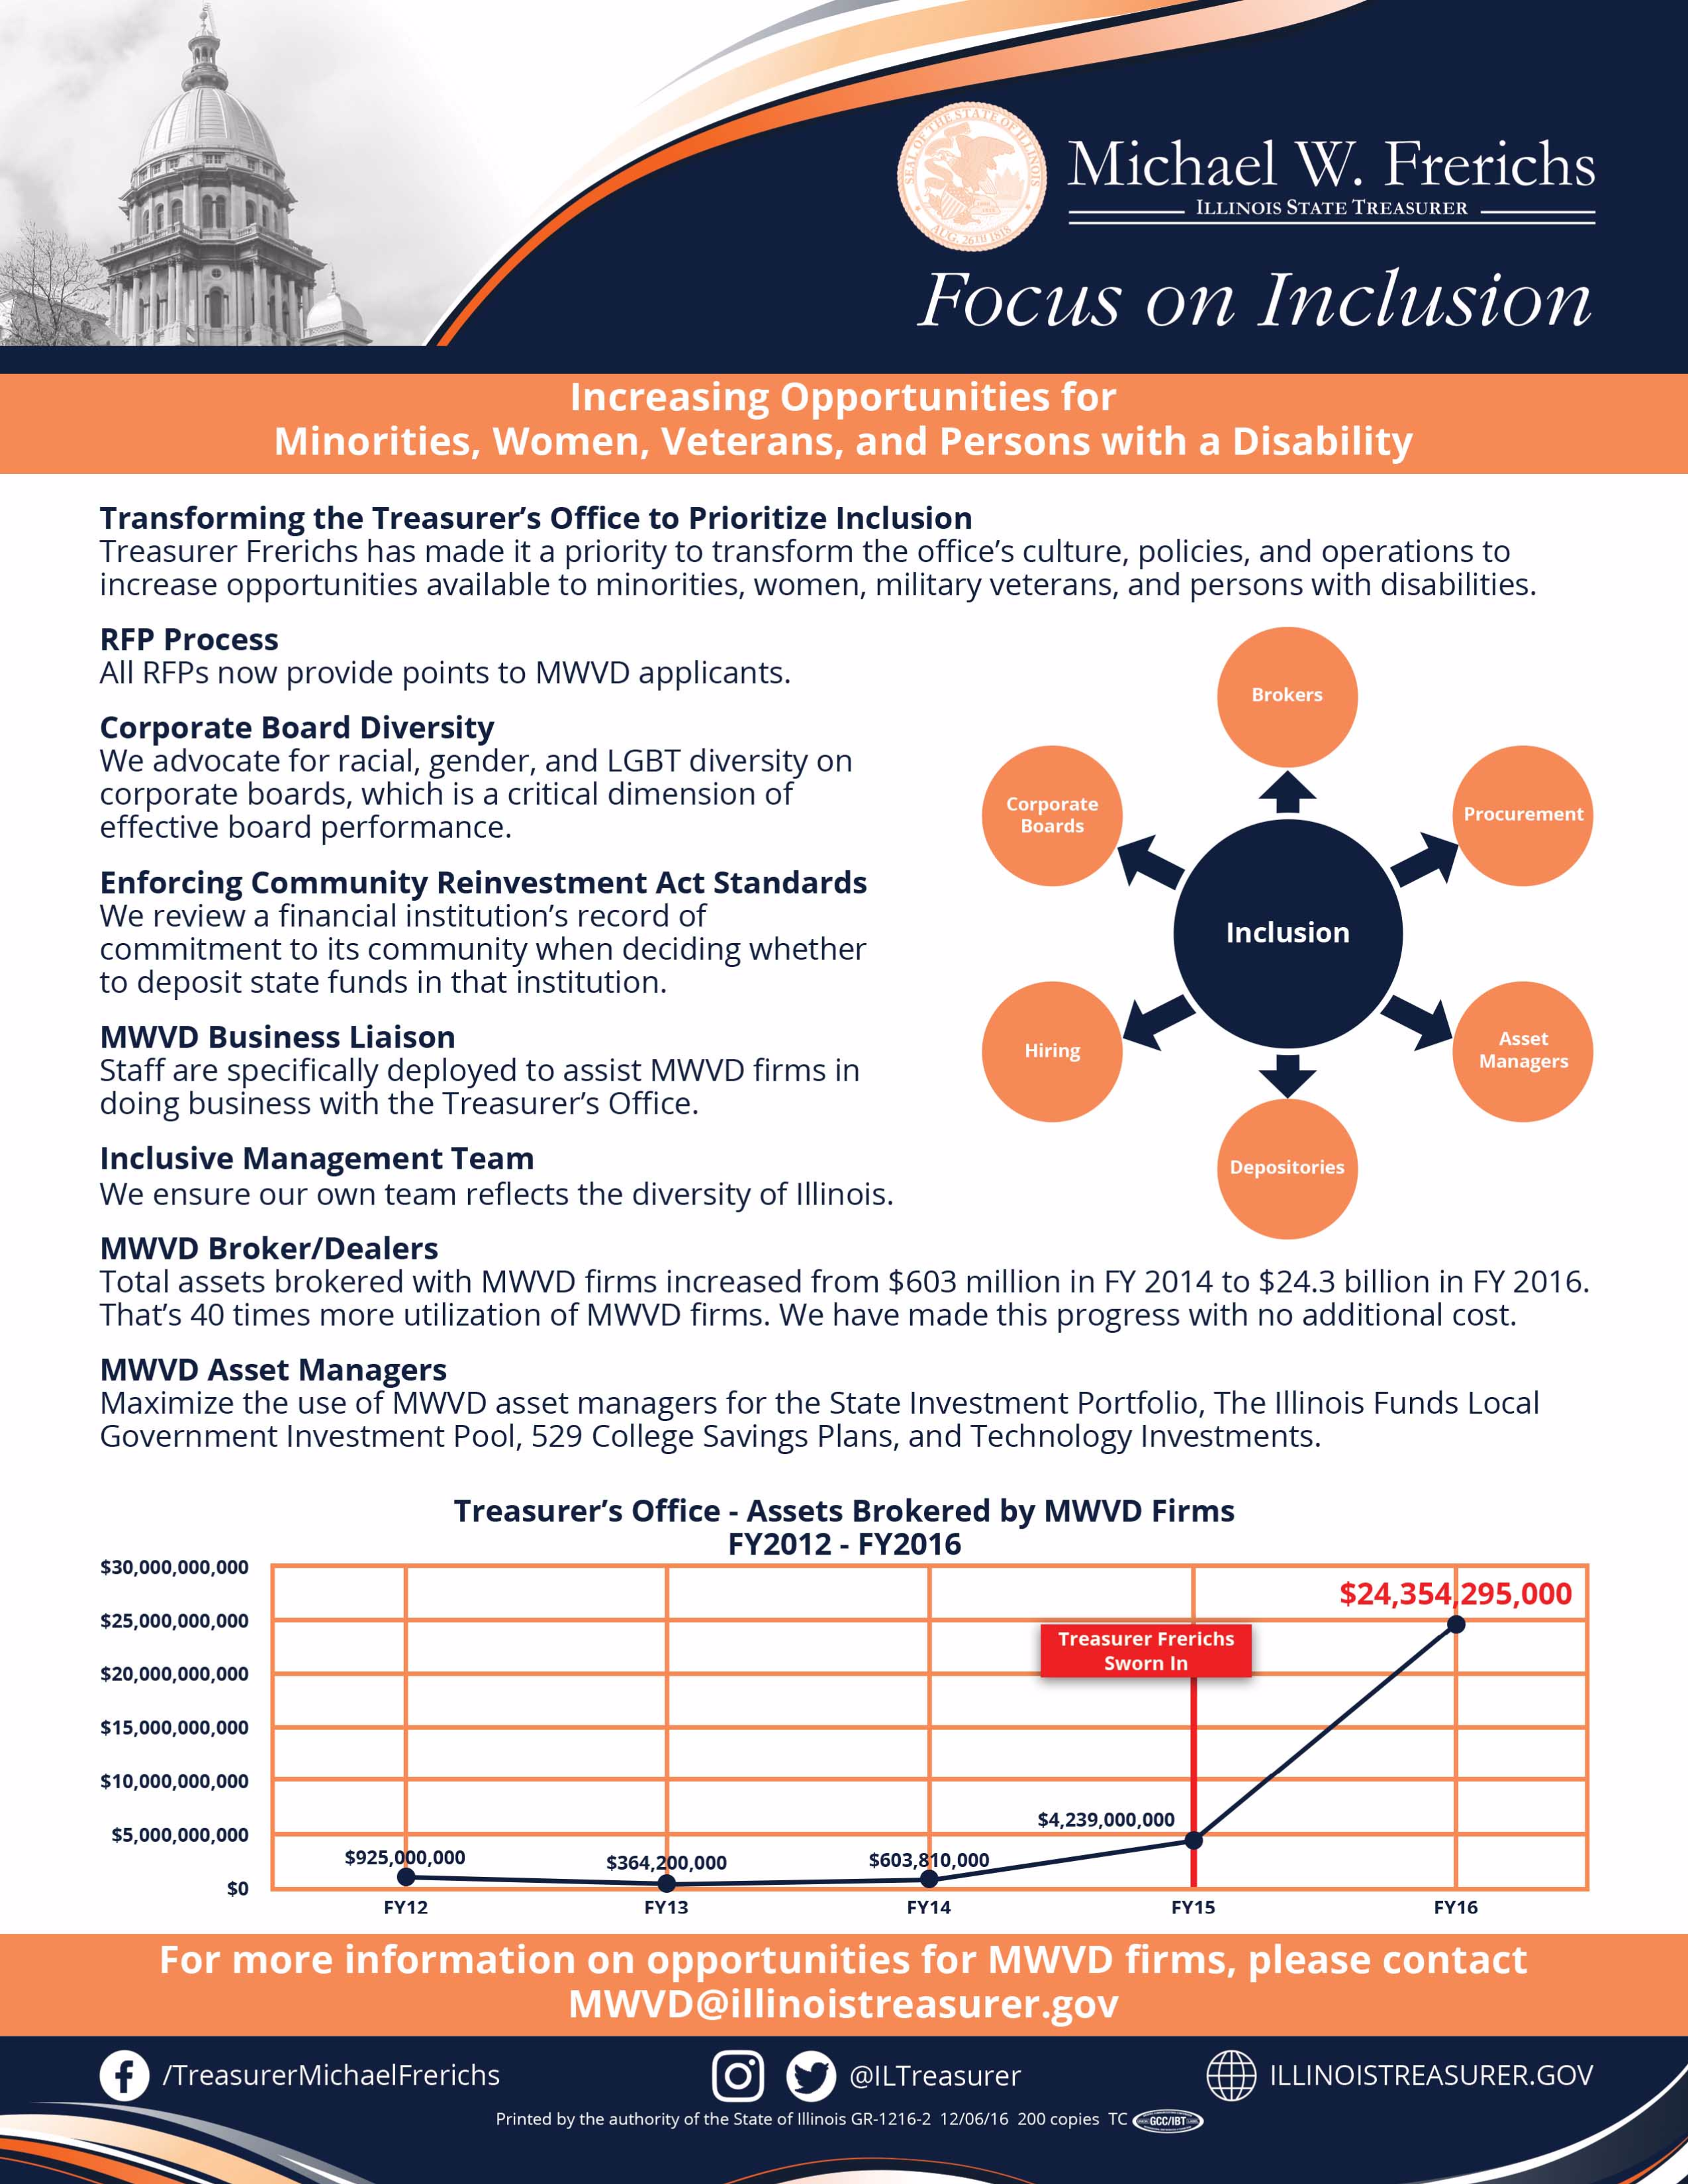 Focus on Inclusion Flyer